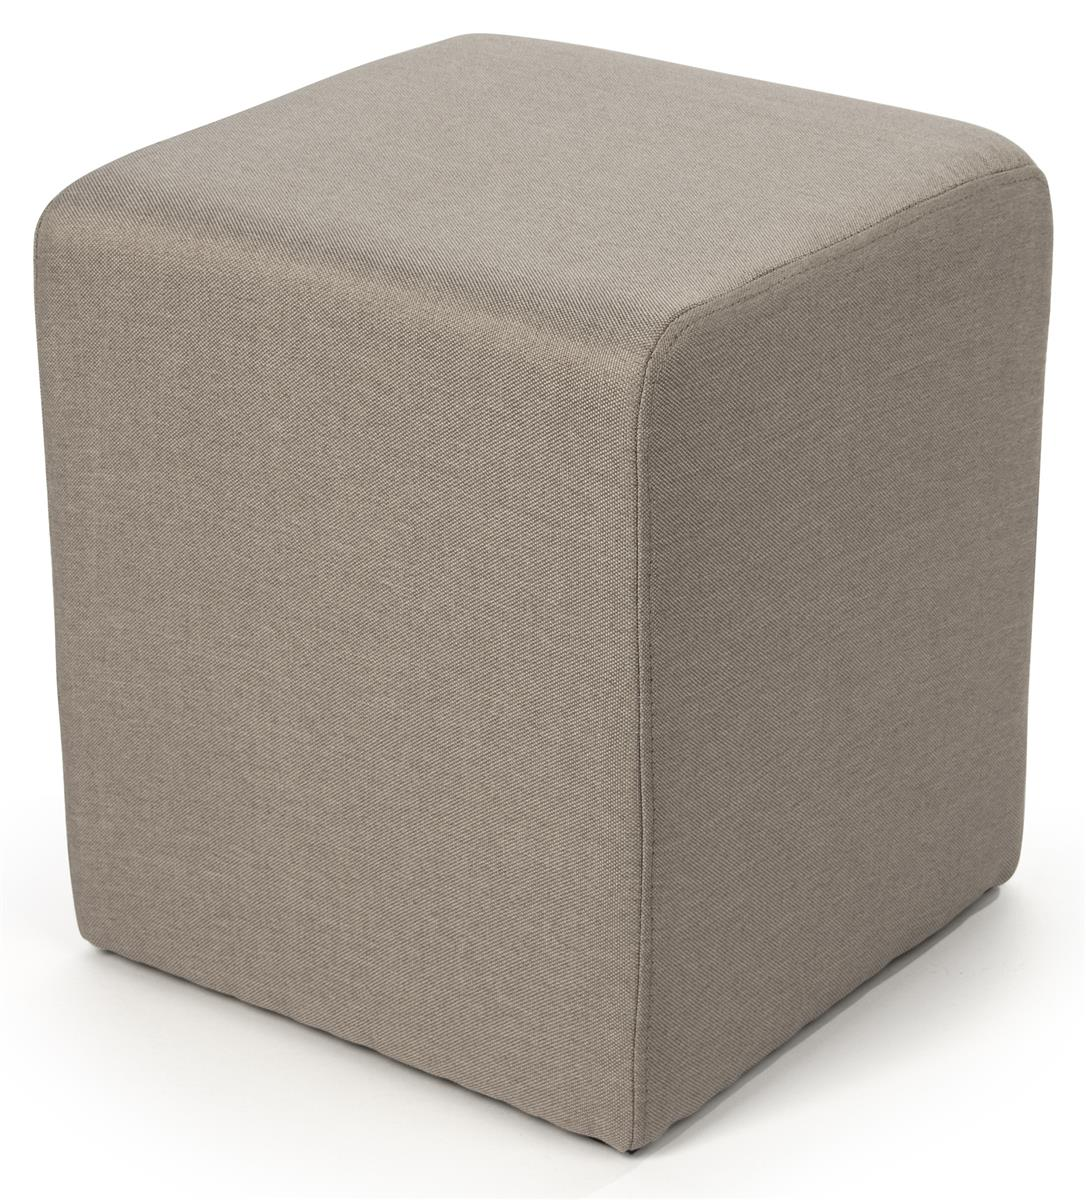 15 square upholstered ottoman stool tan